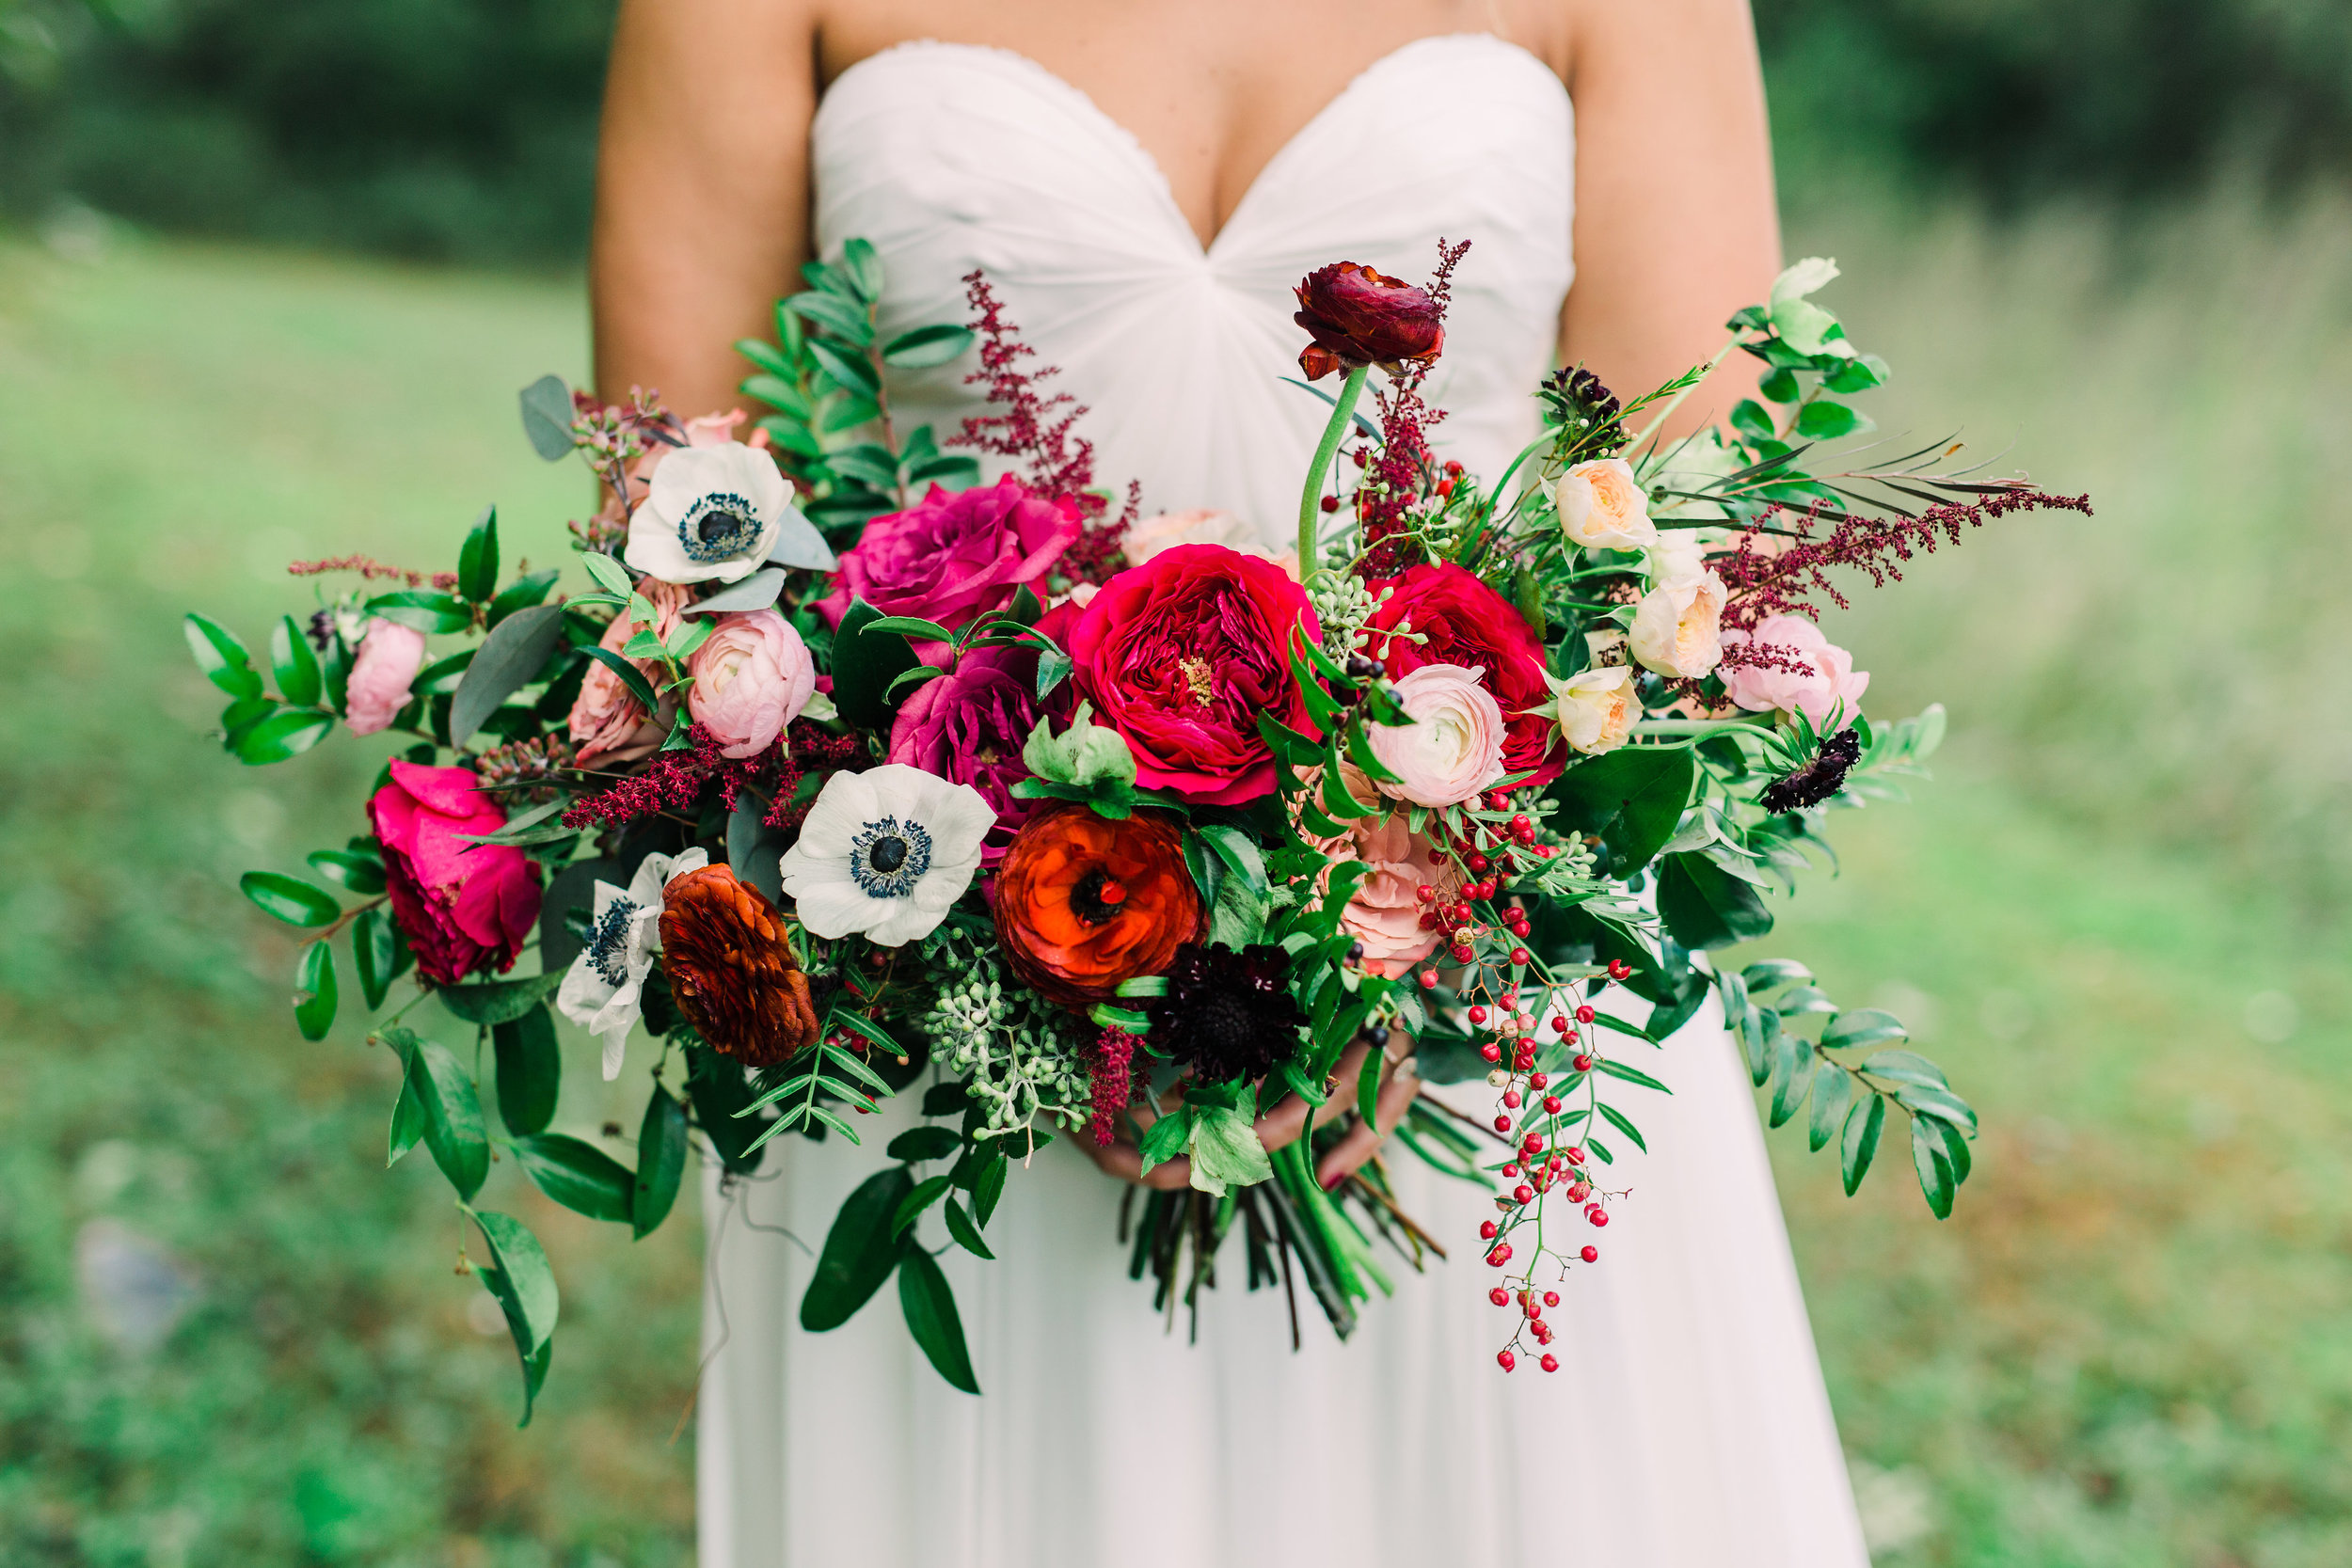 Natural bridal bouquet with marsala ranunculus, anemones, and trailing greenery // Nashville Wedding Floral Design